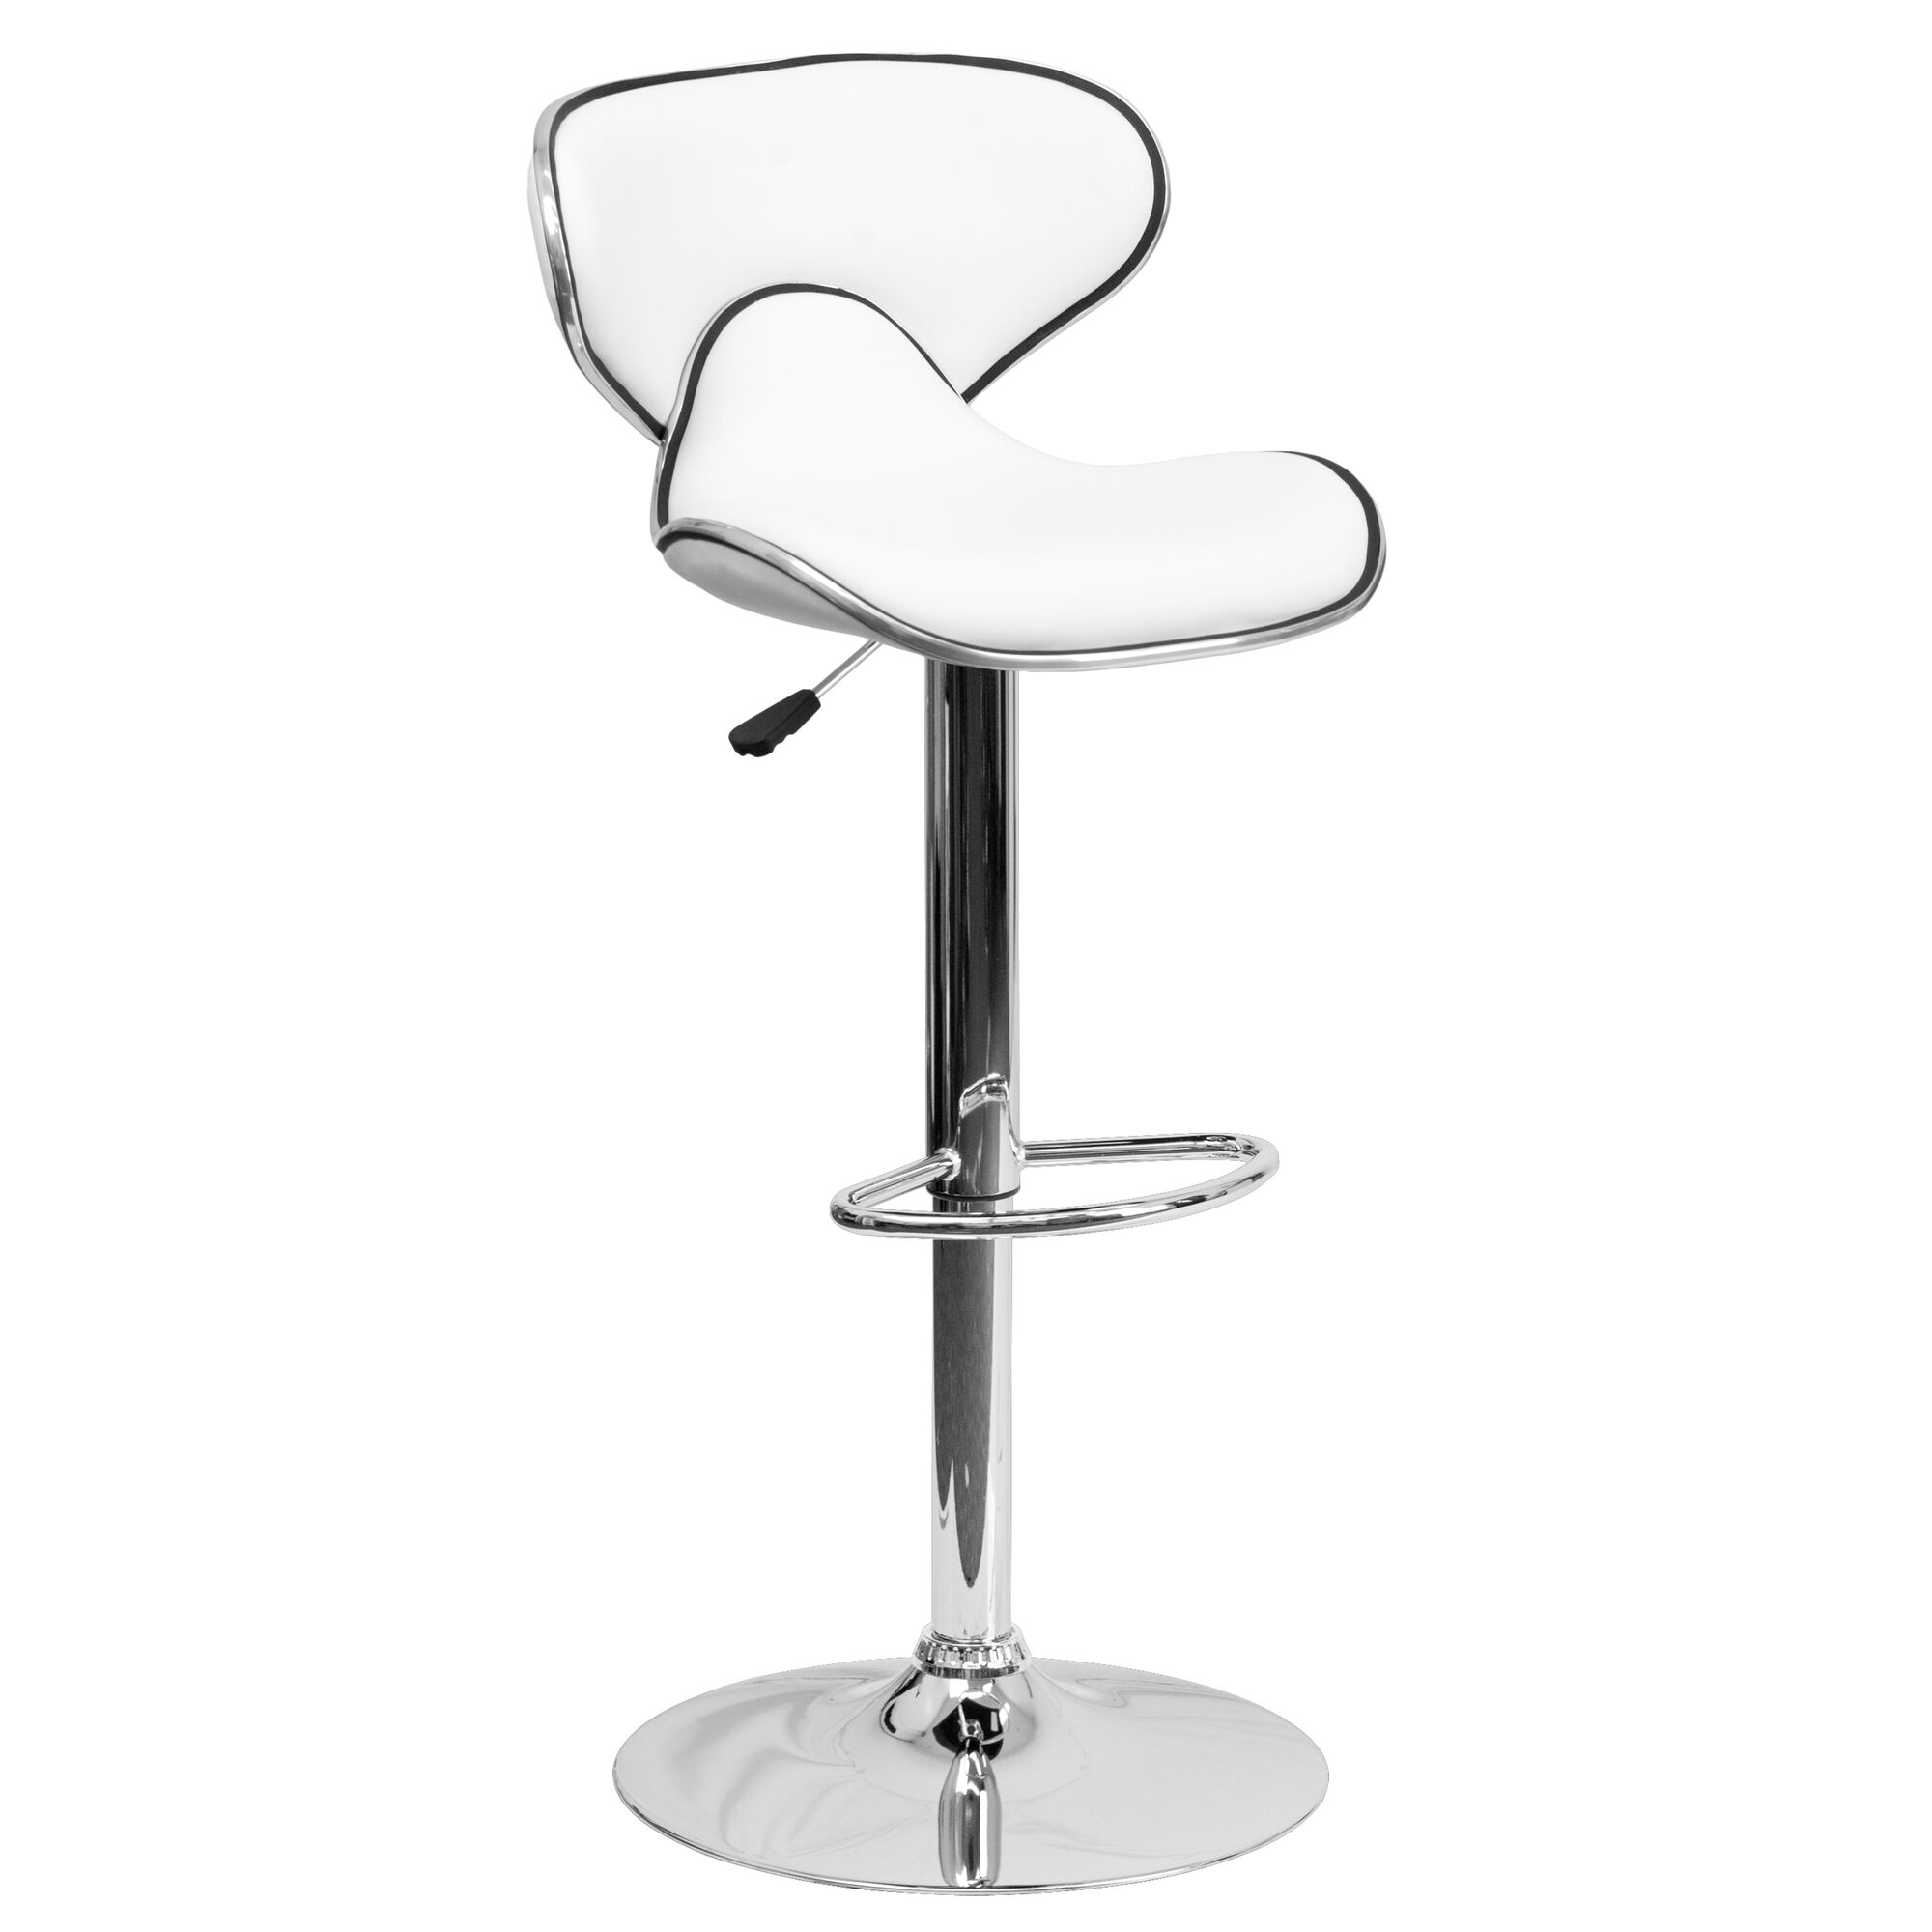 Awesome Contemporary Cozy Mid Back White Vinyl Adjustable Height Barstool With Chrome Base Camellatalisay Diy Chair Ideas Camellatalisaycom